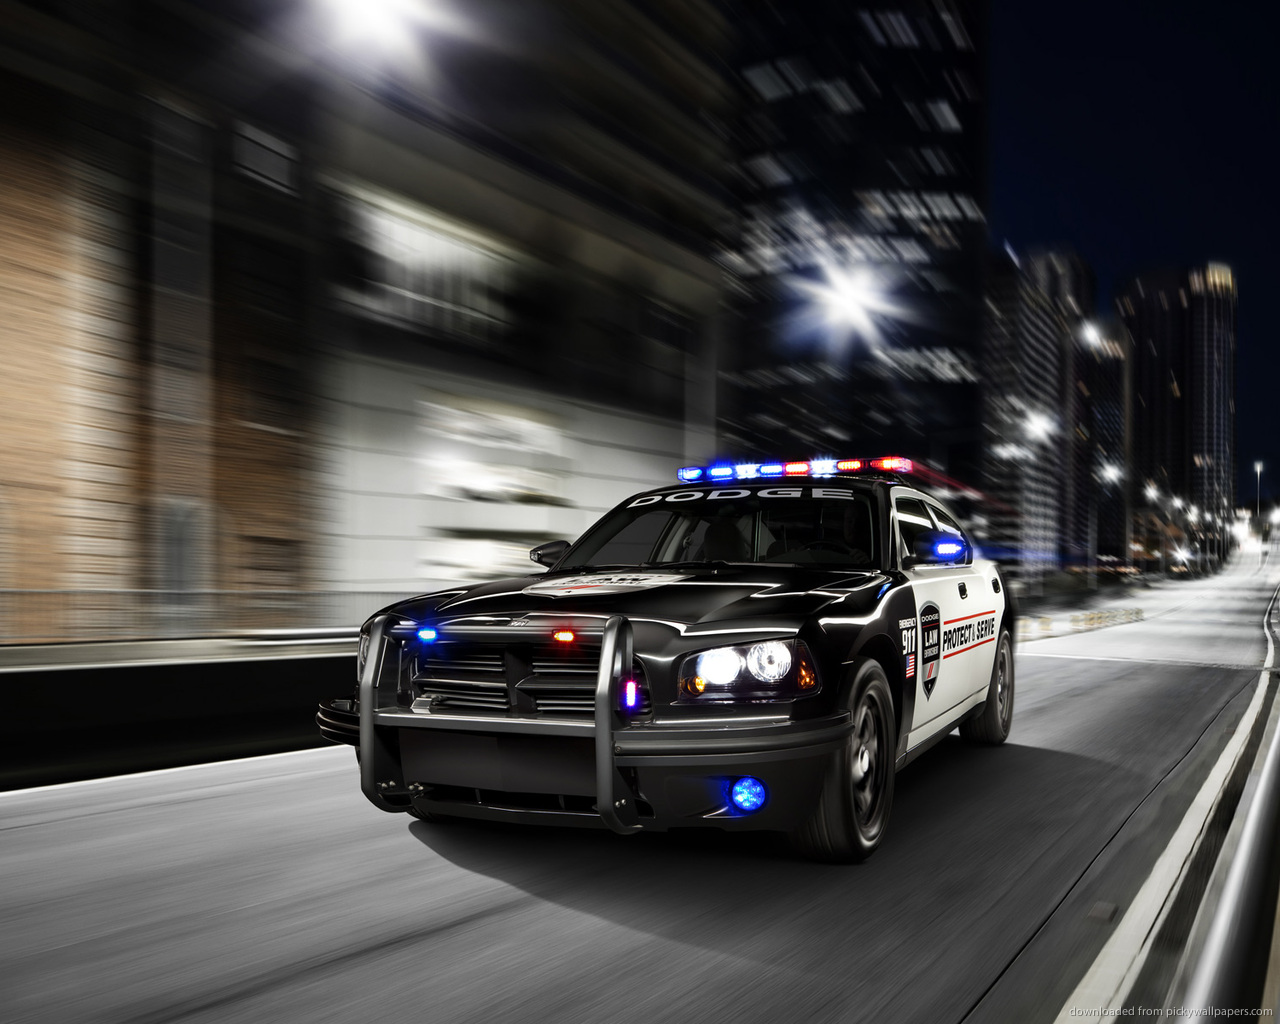 Dodge Charger Police Car >> Police Wallpaper Backgrounds - WallpaperSafari